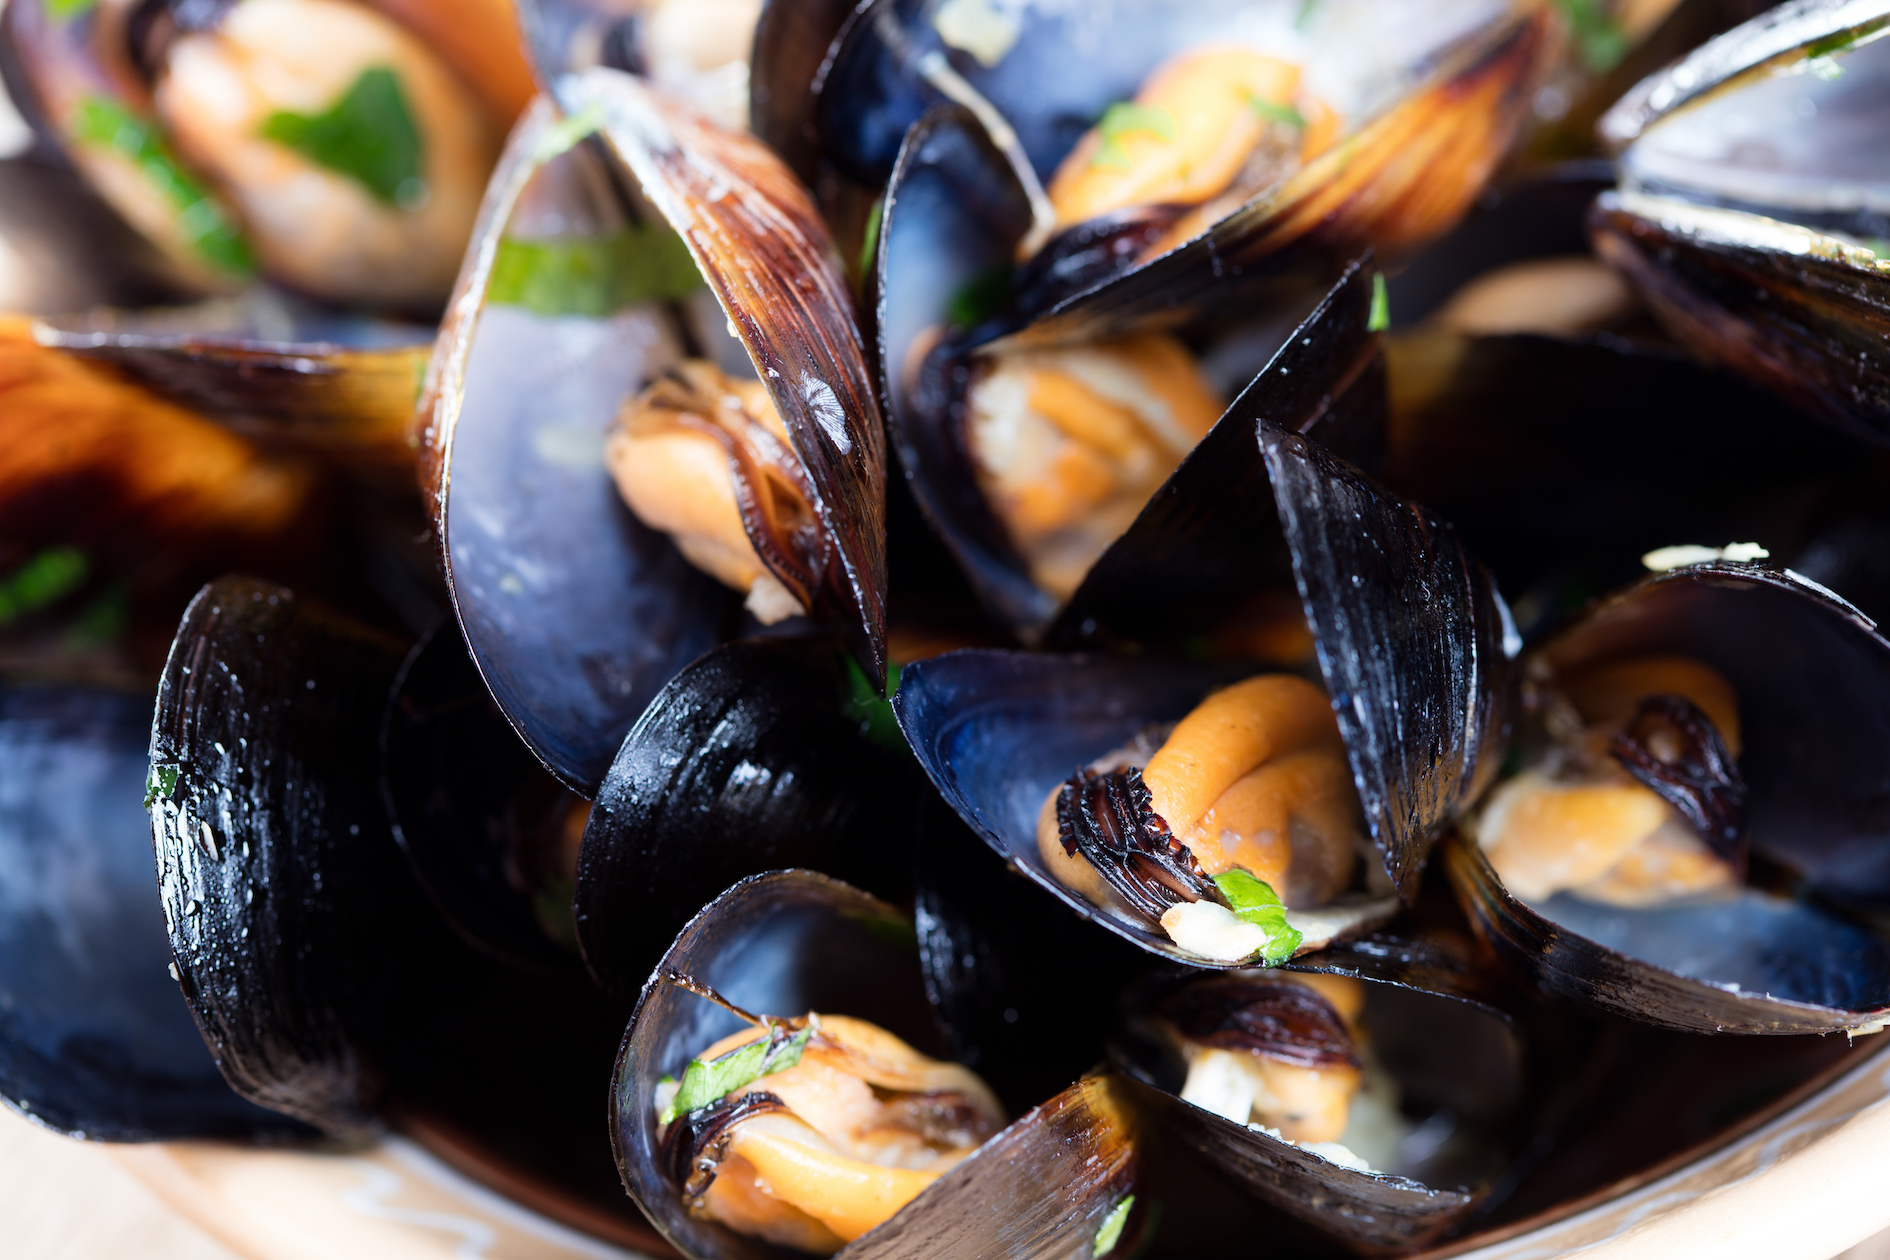 A new study has found that microplastics are contaminating mussels all the way from the European Arctic to China.